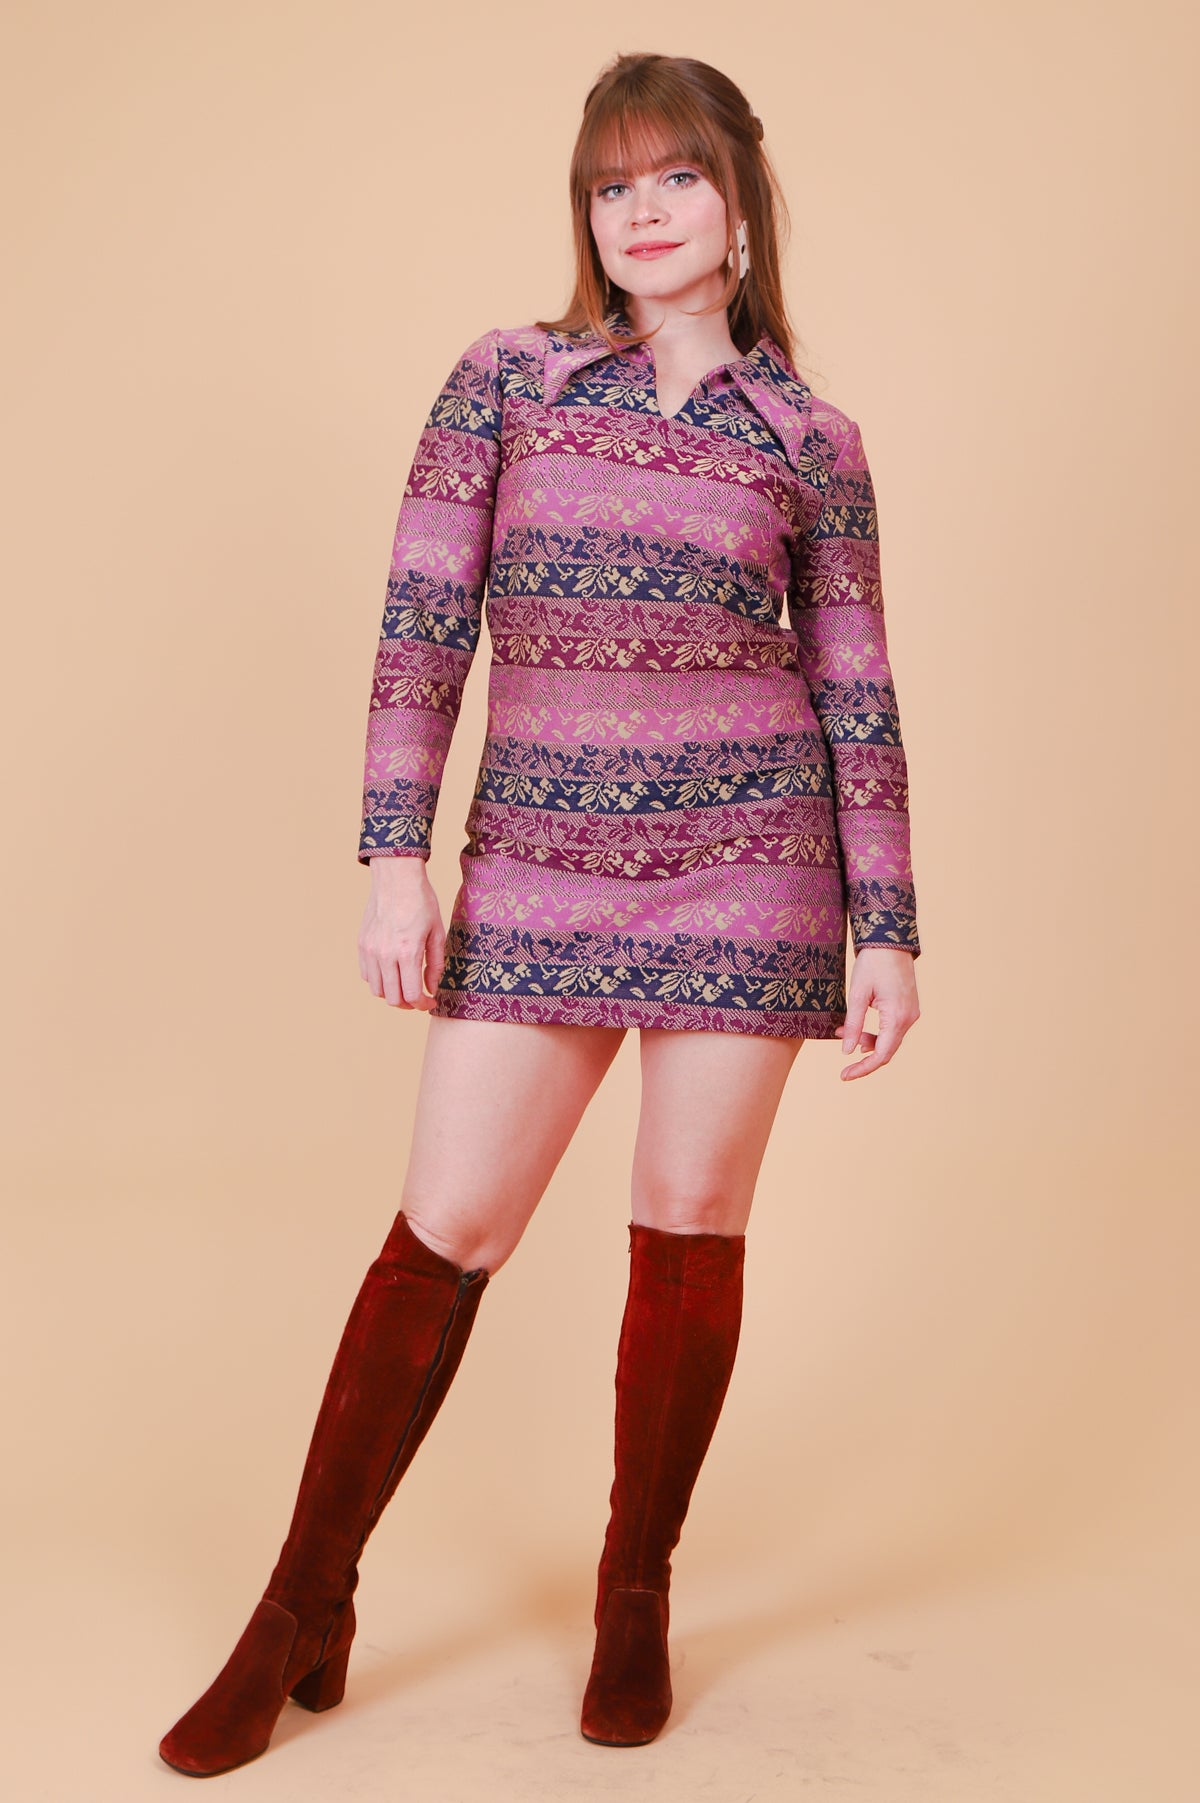 Vintage 1970's Odyssey and Oracle Violet Mini-Dress